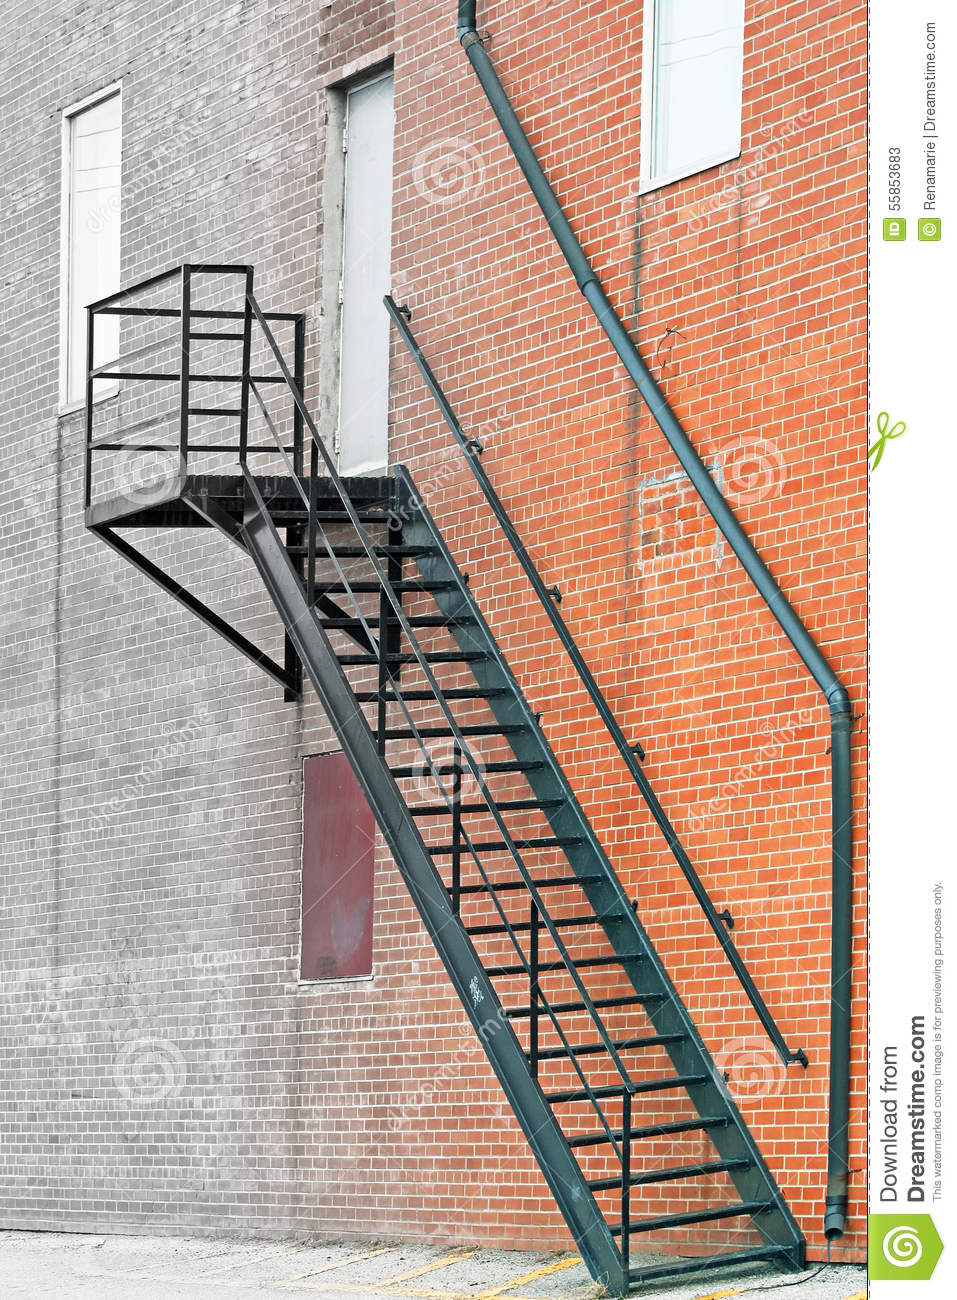 House Exterior Stair Tower : Metal stair fire escape on exterior of brick building